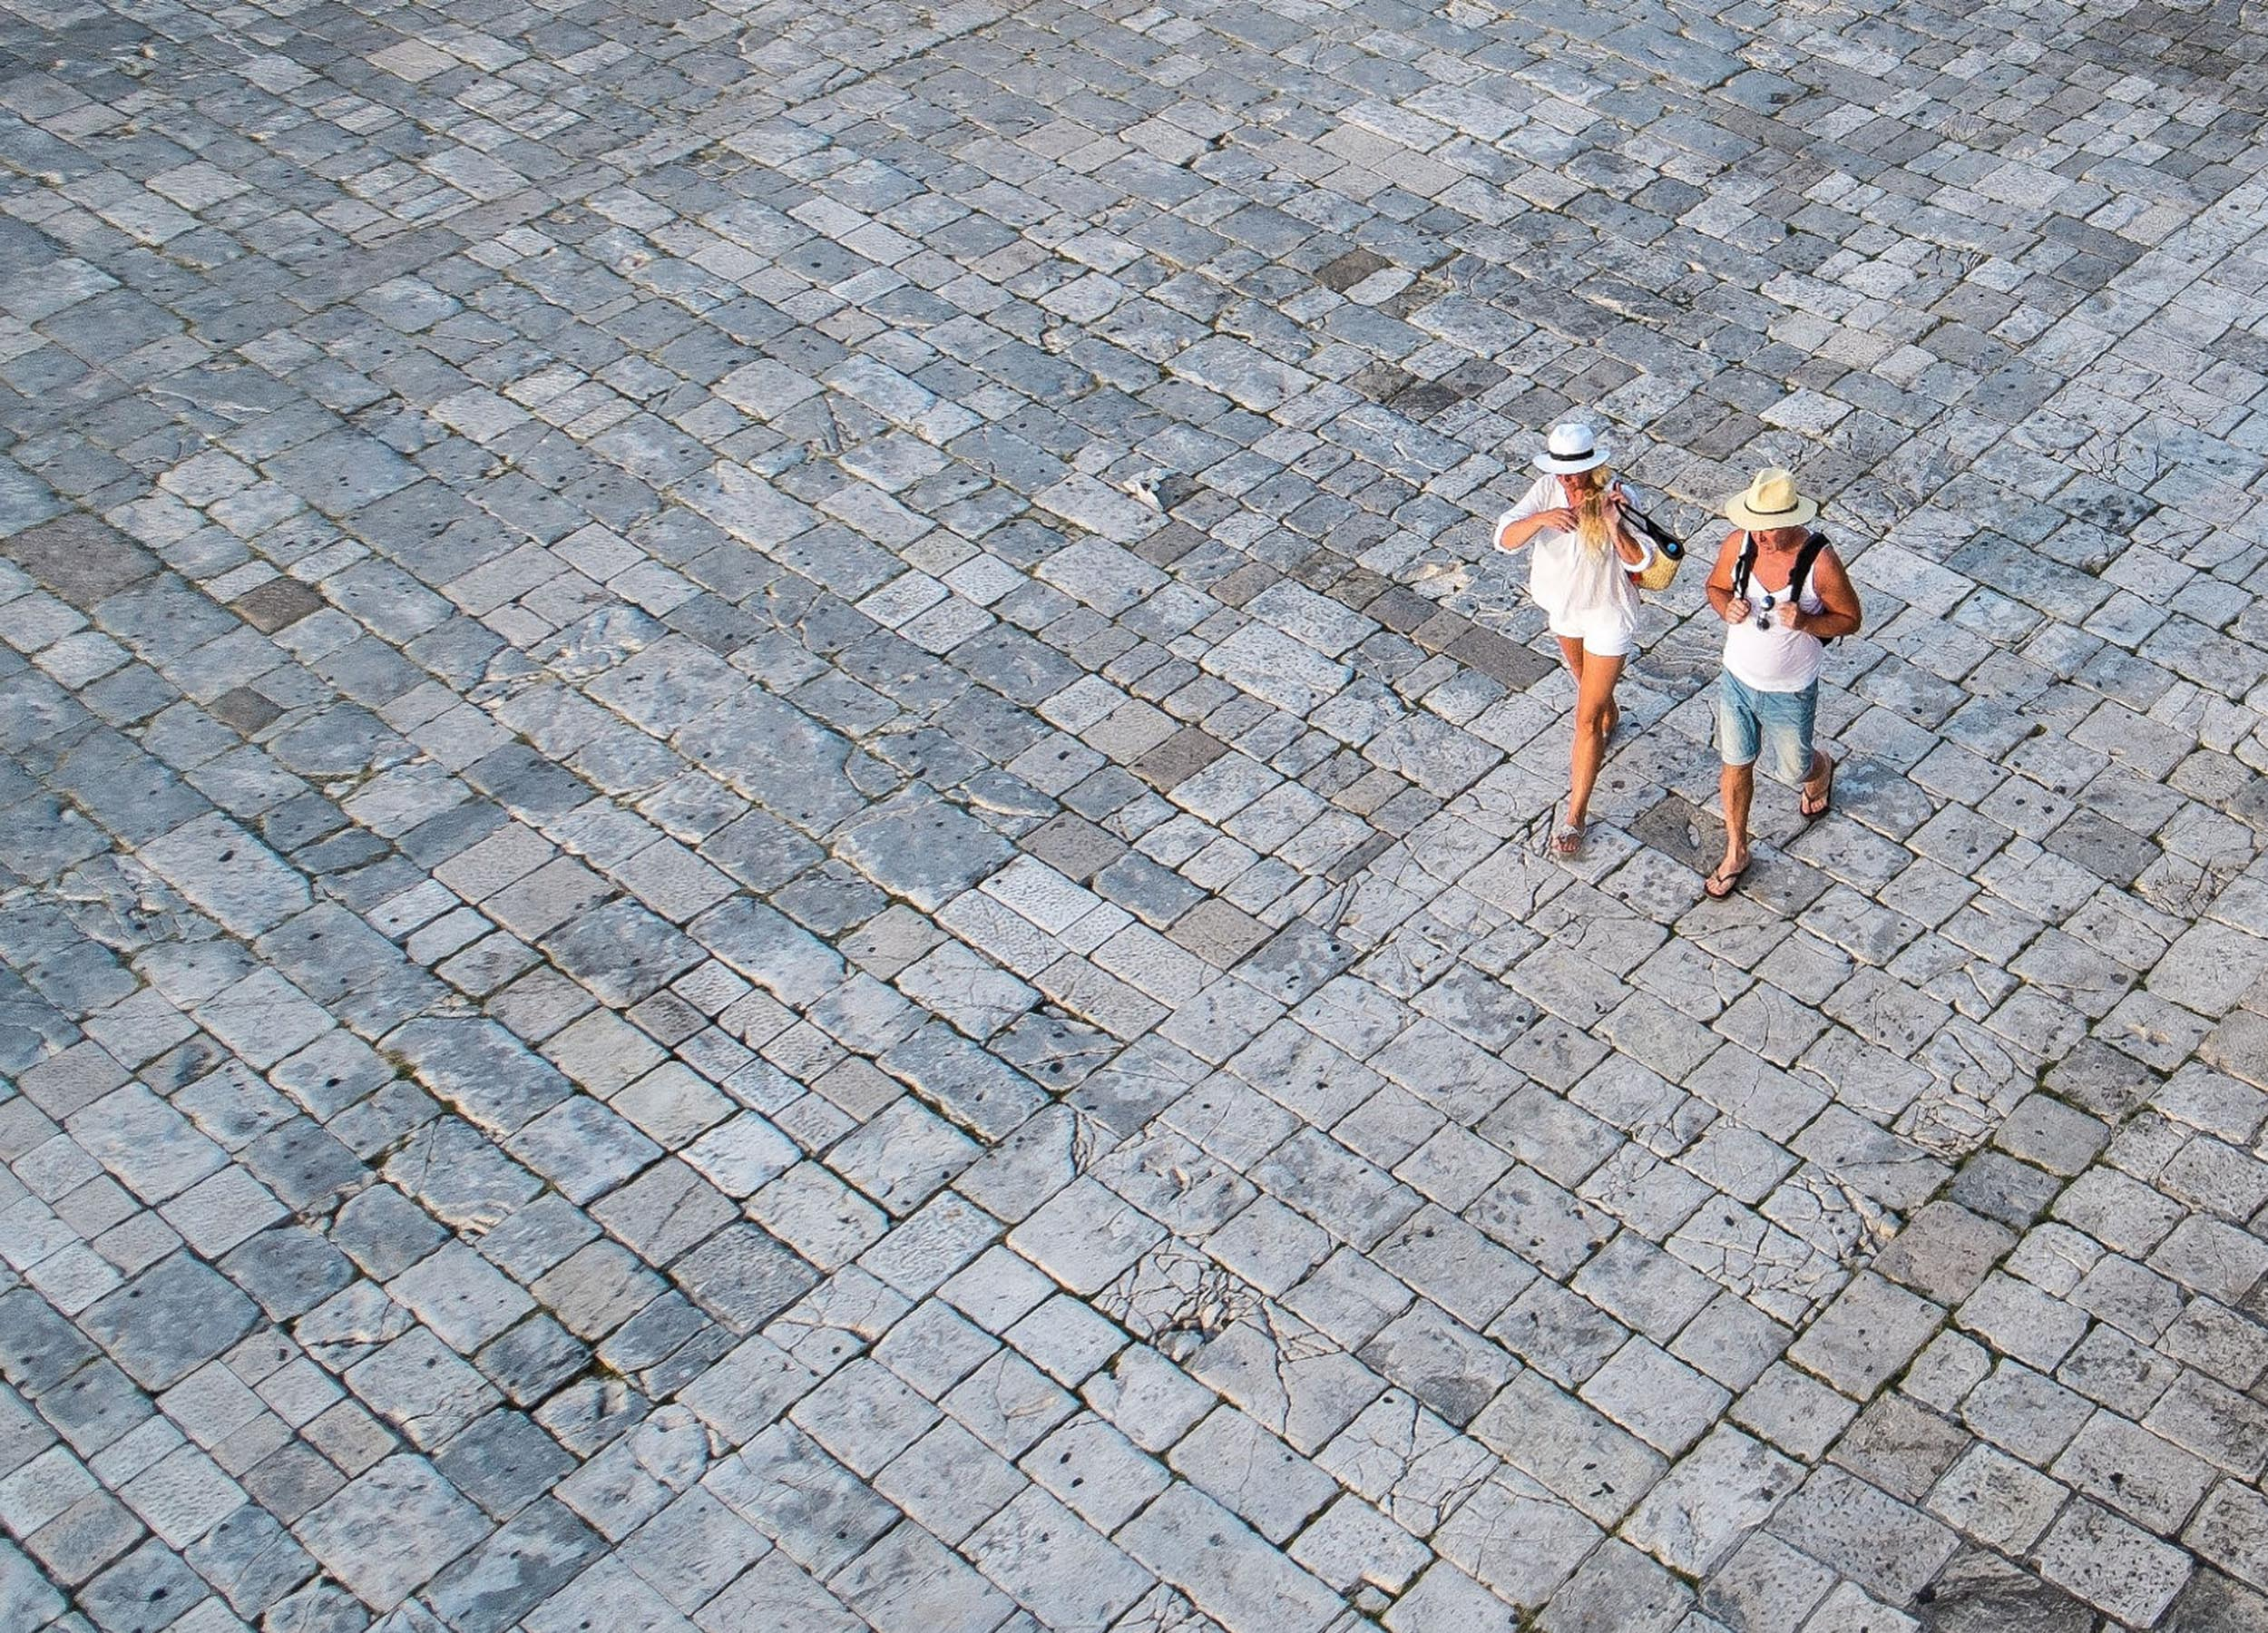 A couple in shorts and hats crossing stone paving in Hvar, Croatia.